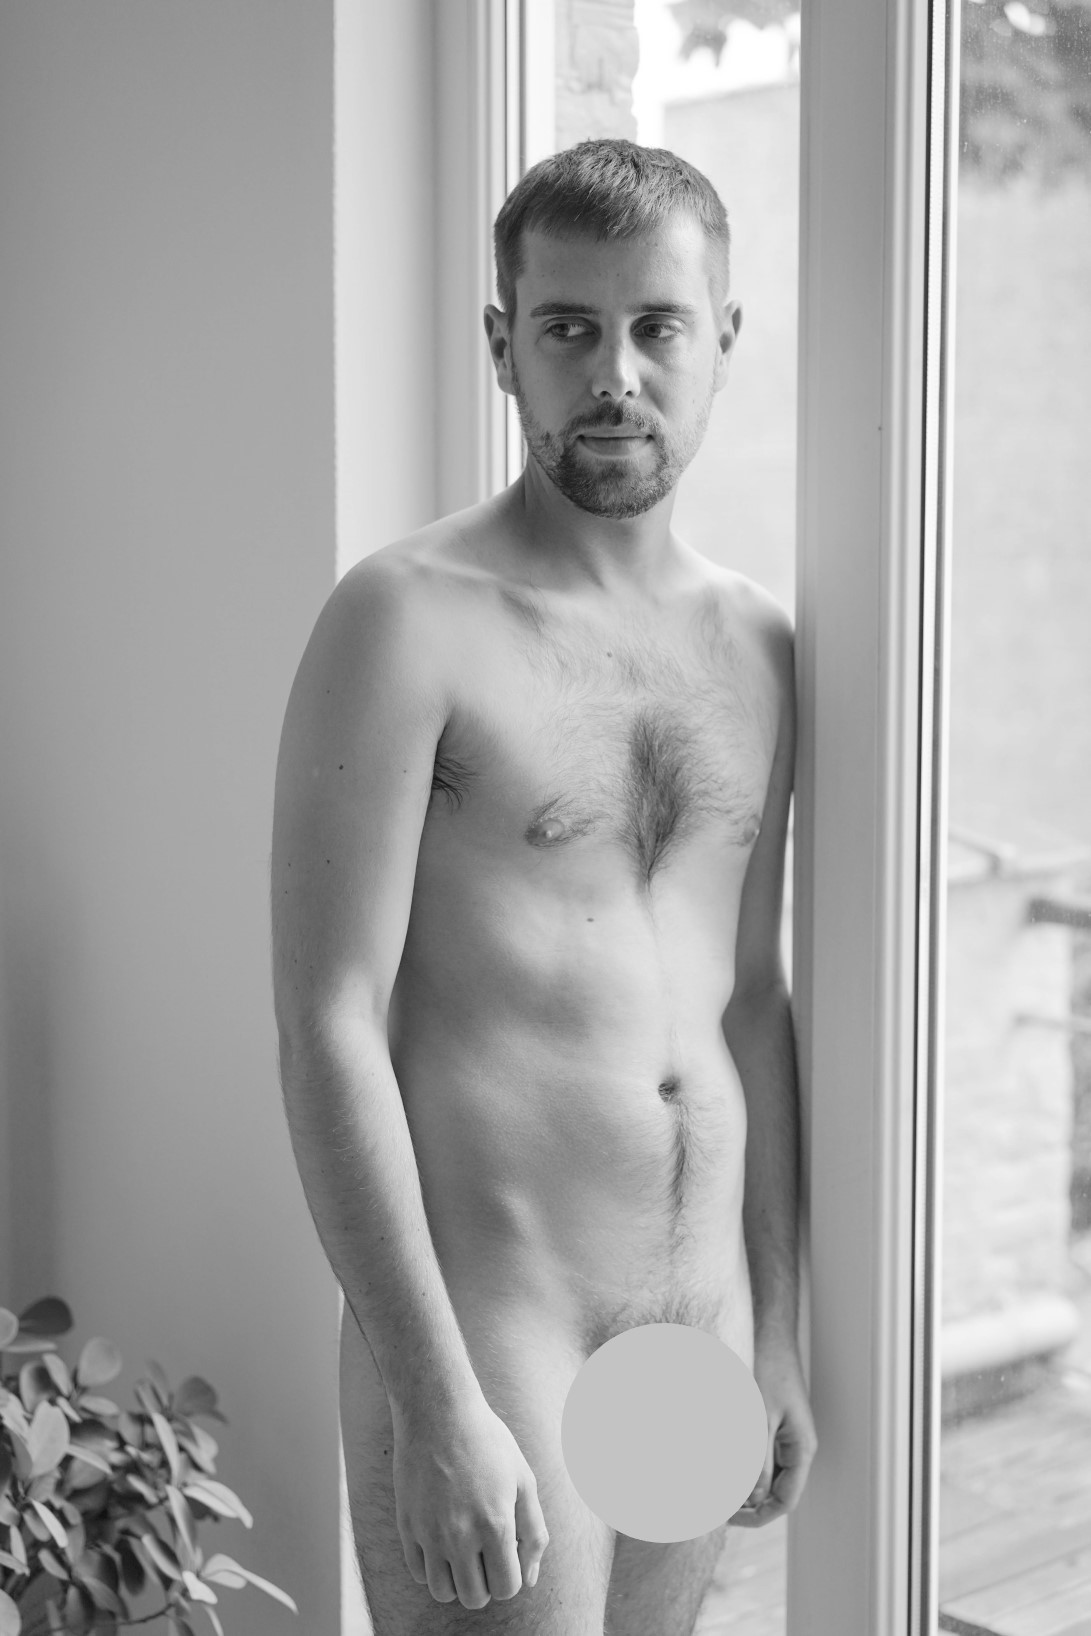 Guillaume from France